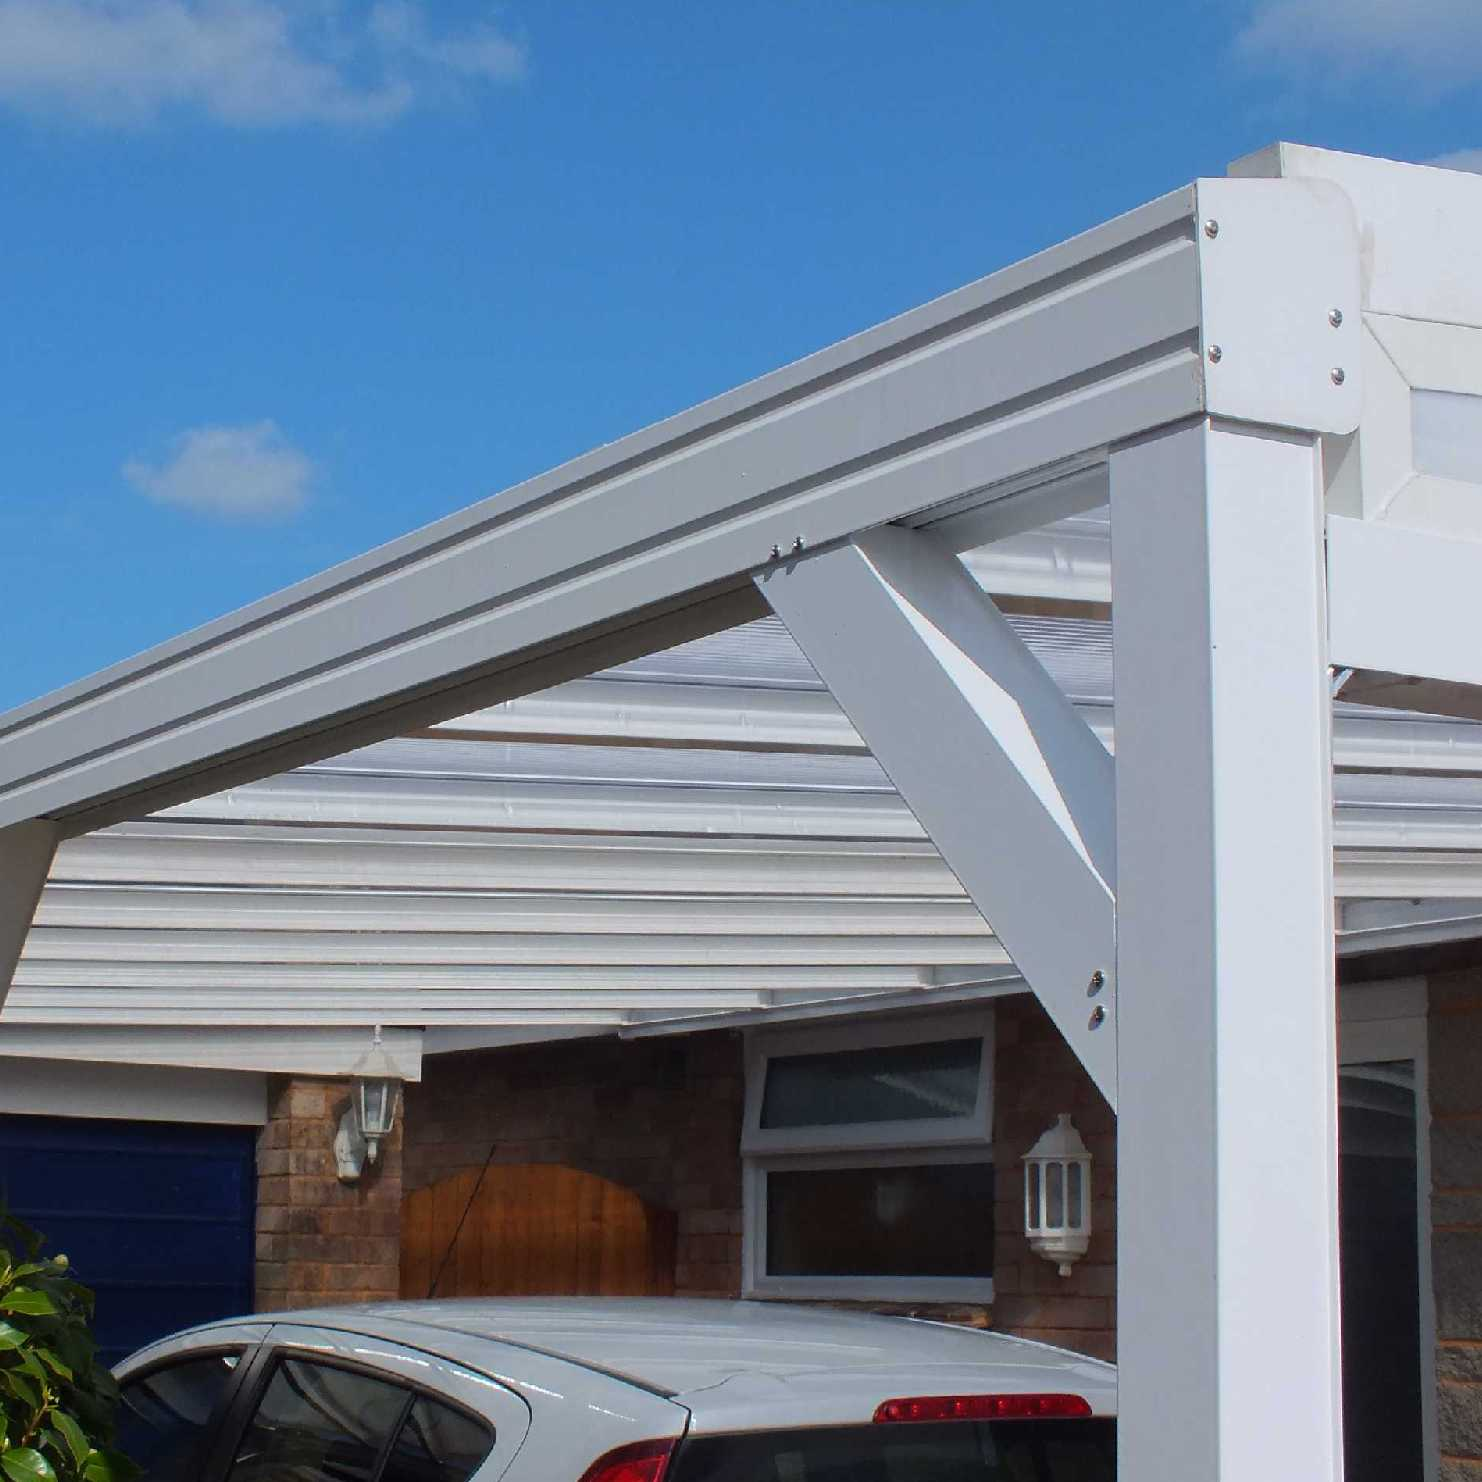 Great deals on Omega Smart Lean-To Canopy with 16mm Polycarbonate Glazing - 10.6m (W) x 2.5m (P), (5) Supporting Posts